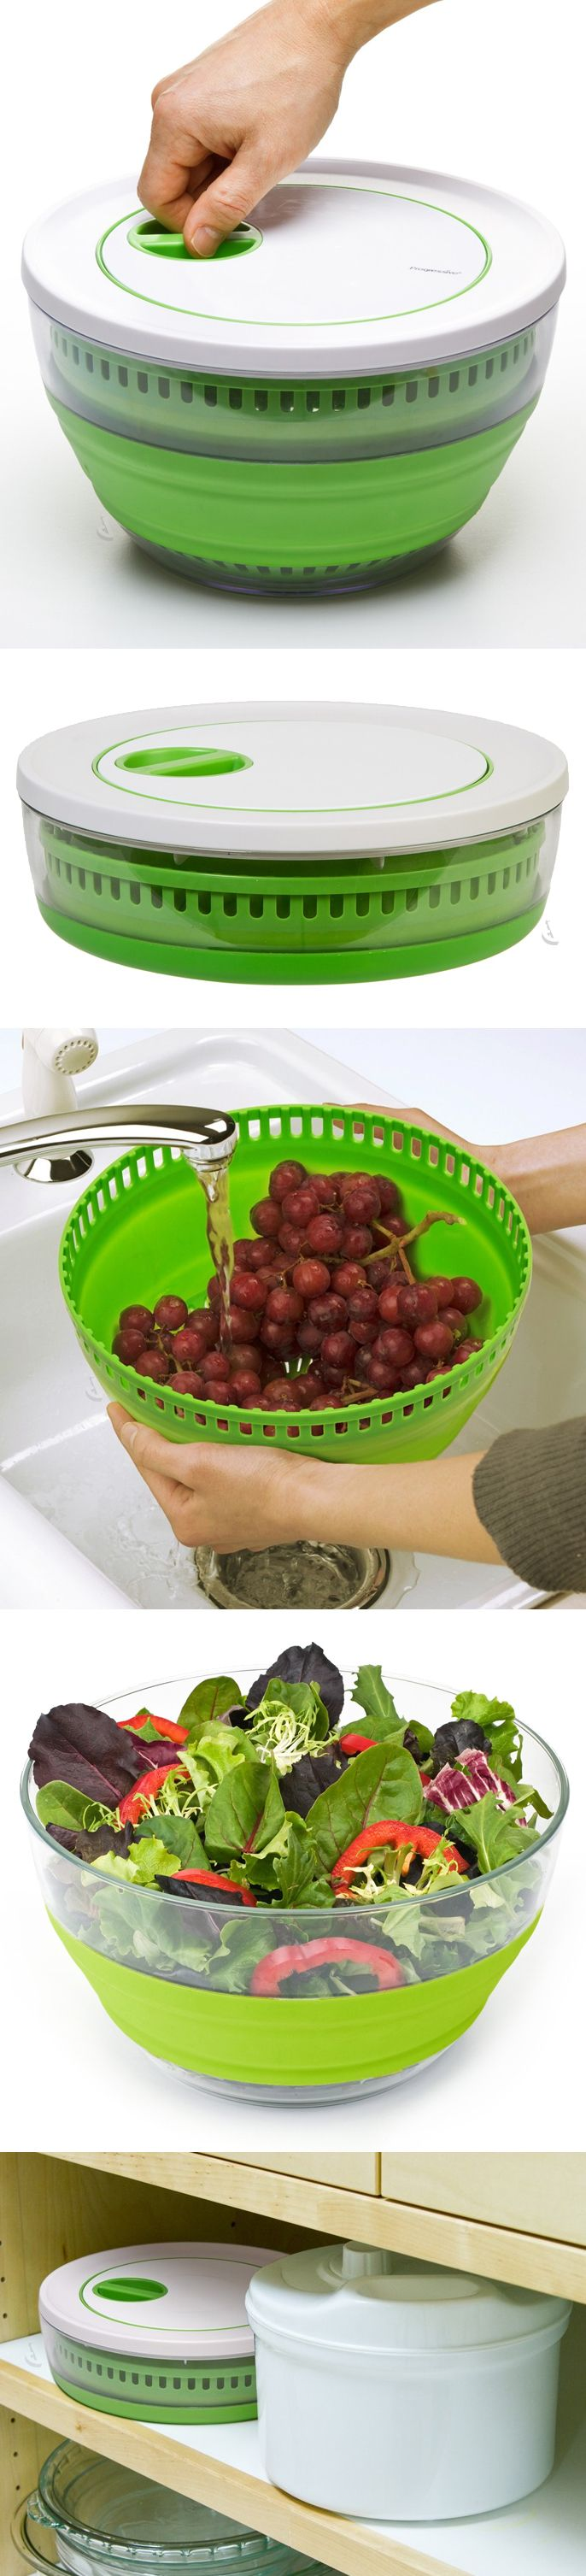 Collapsible salad spinner // packs flat for easy storage, and doubles as a handy colander and salad bowl! Brilliant! #product_design #kitchen #gadget